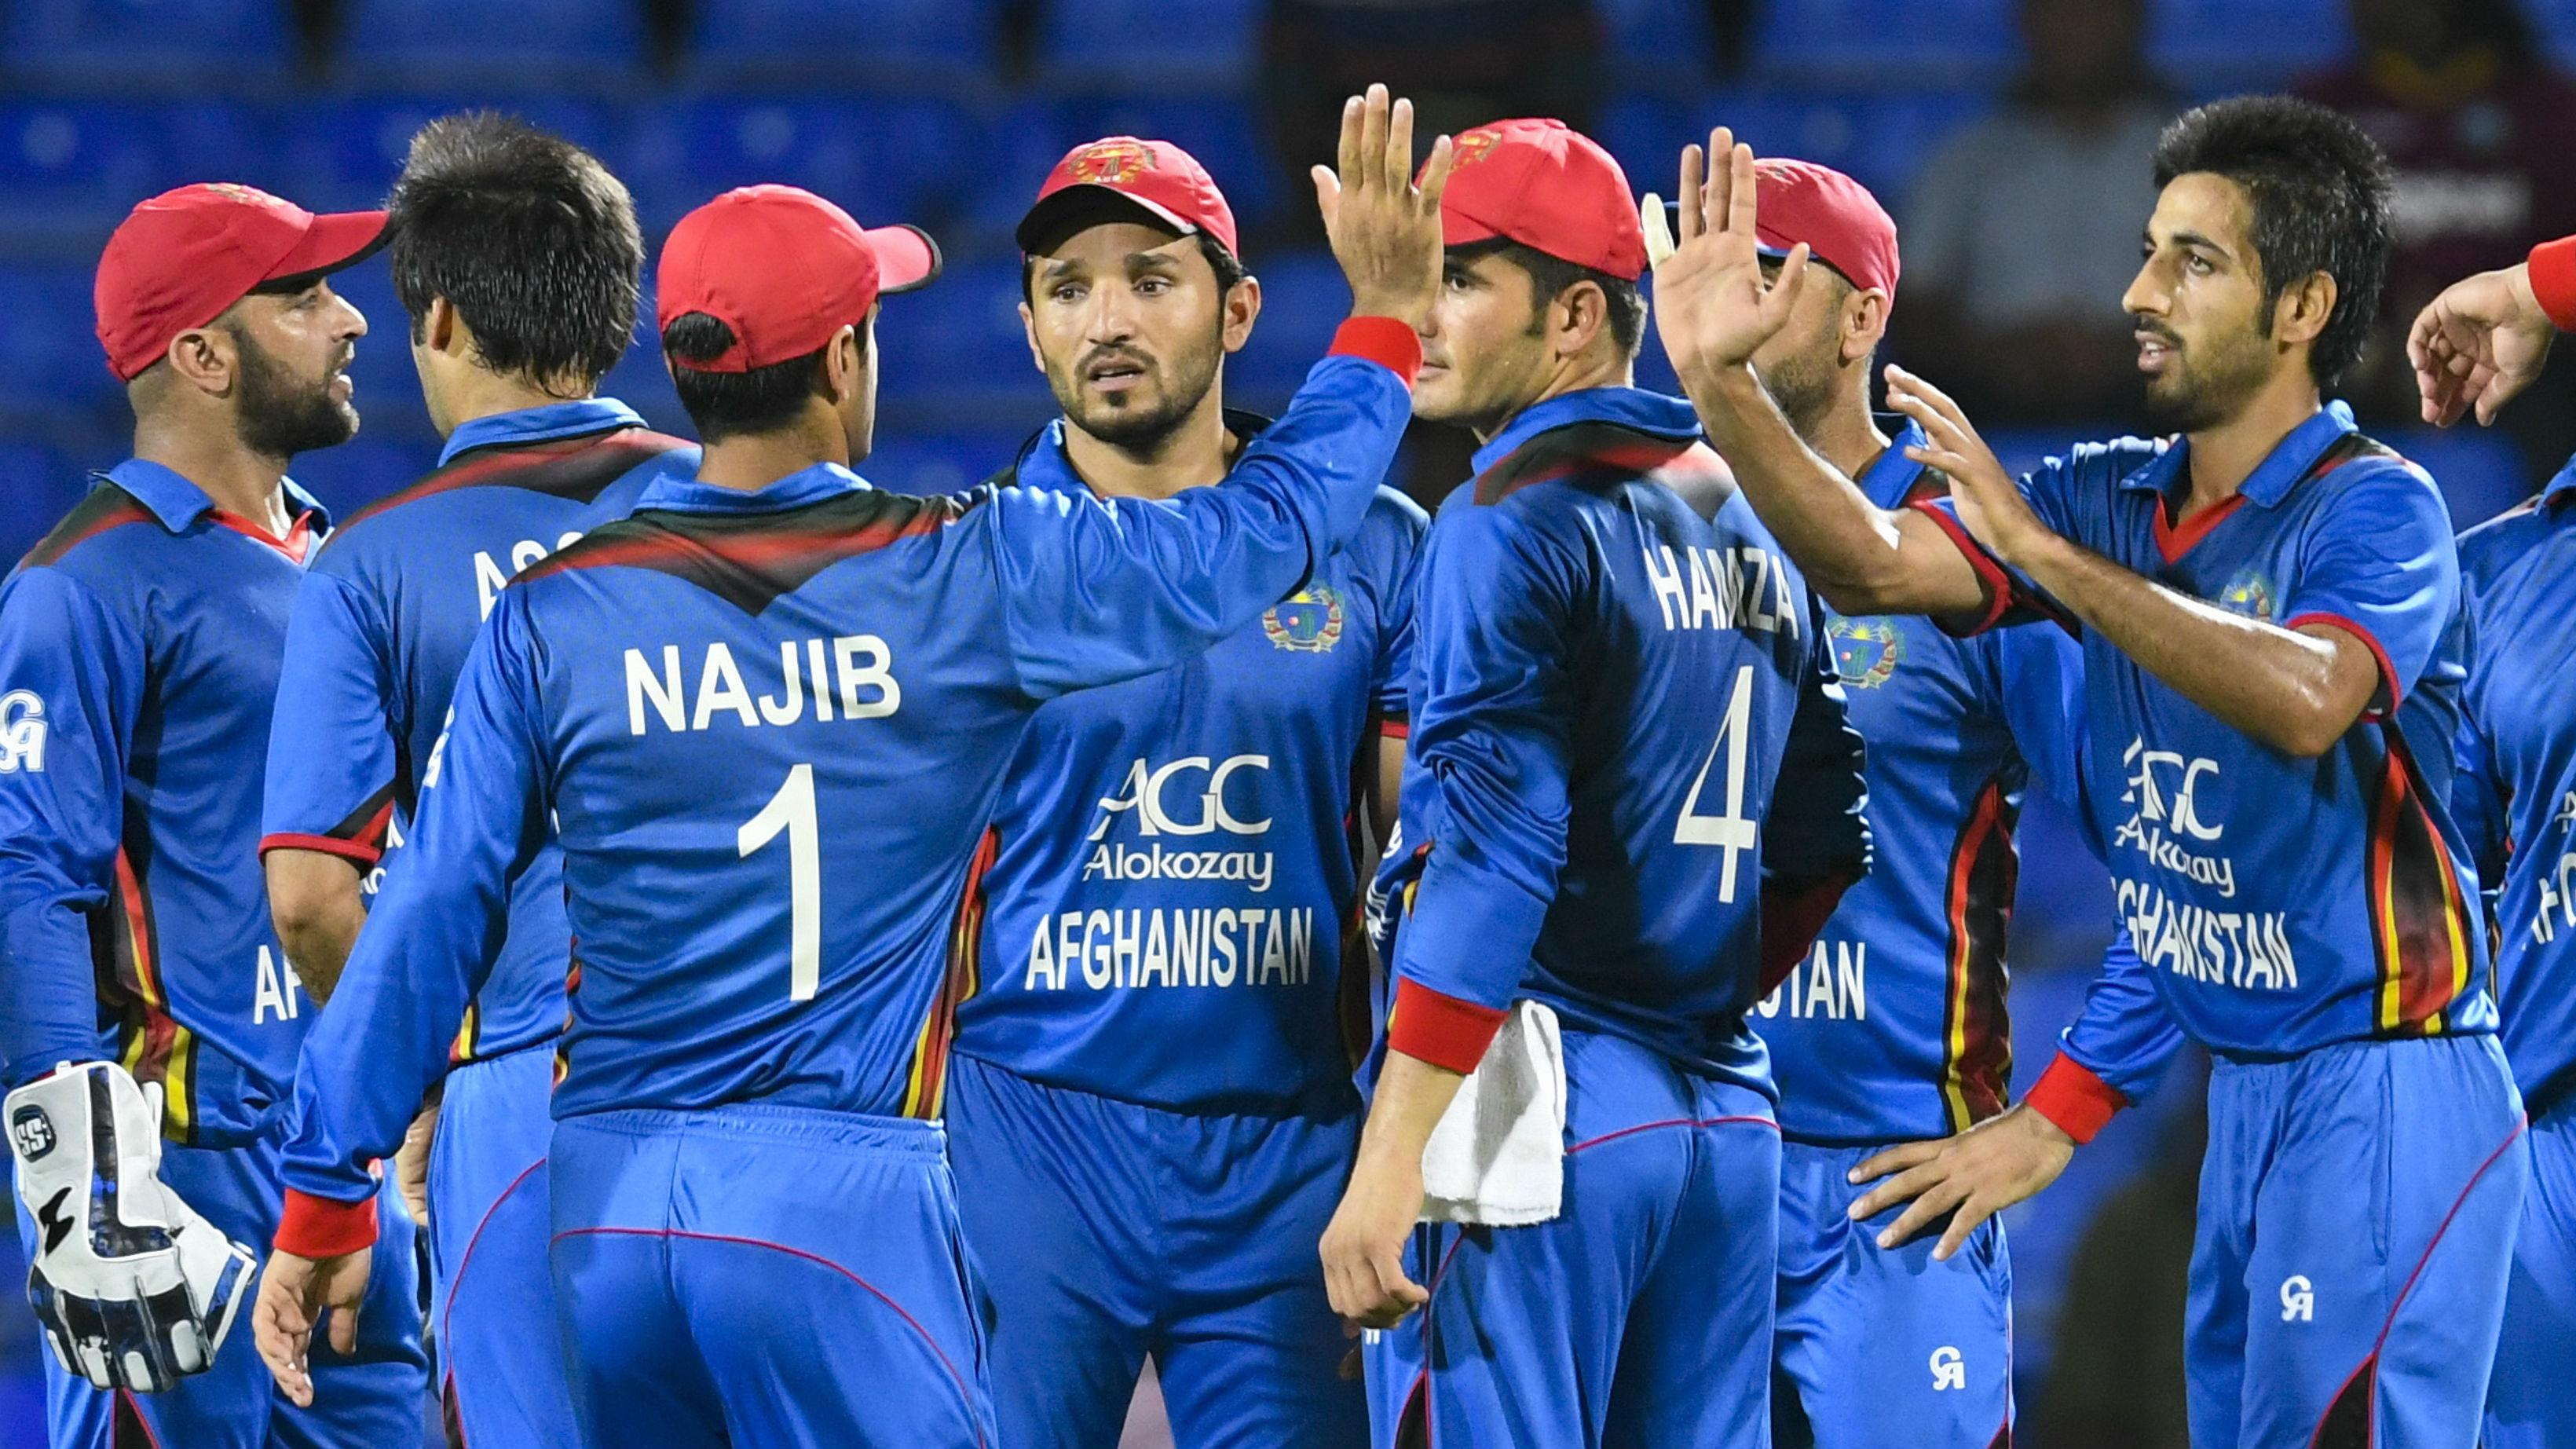 icc-cricket.com - Ireland and Afghanistan ICC newest full members amid wide-ranging governance reform